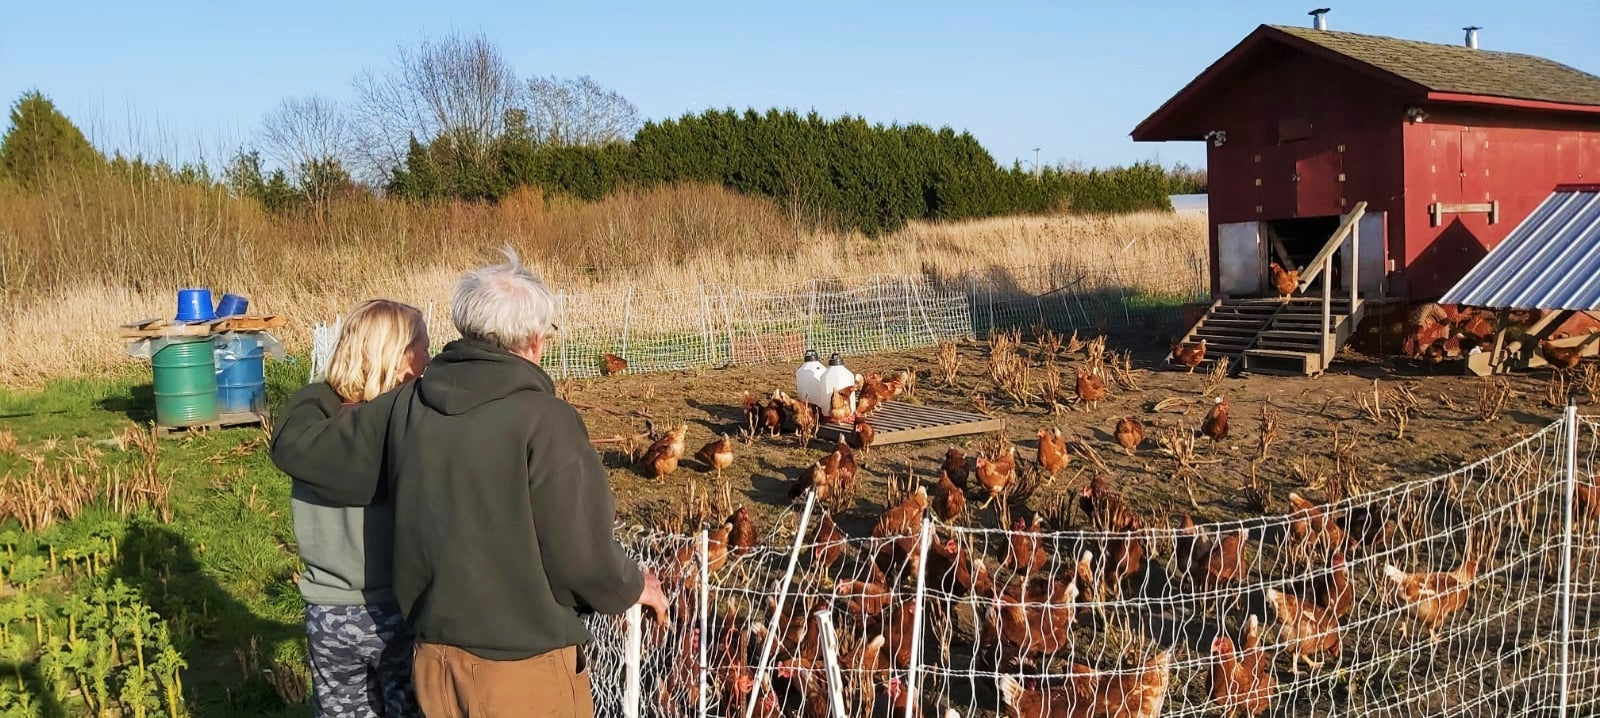 Farmer and Chicken Coops